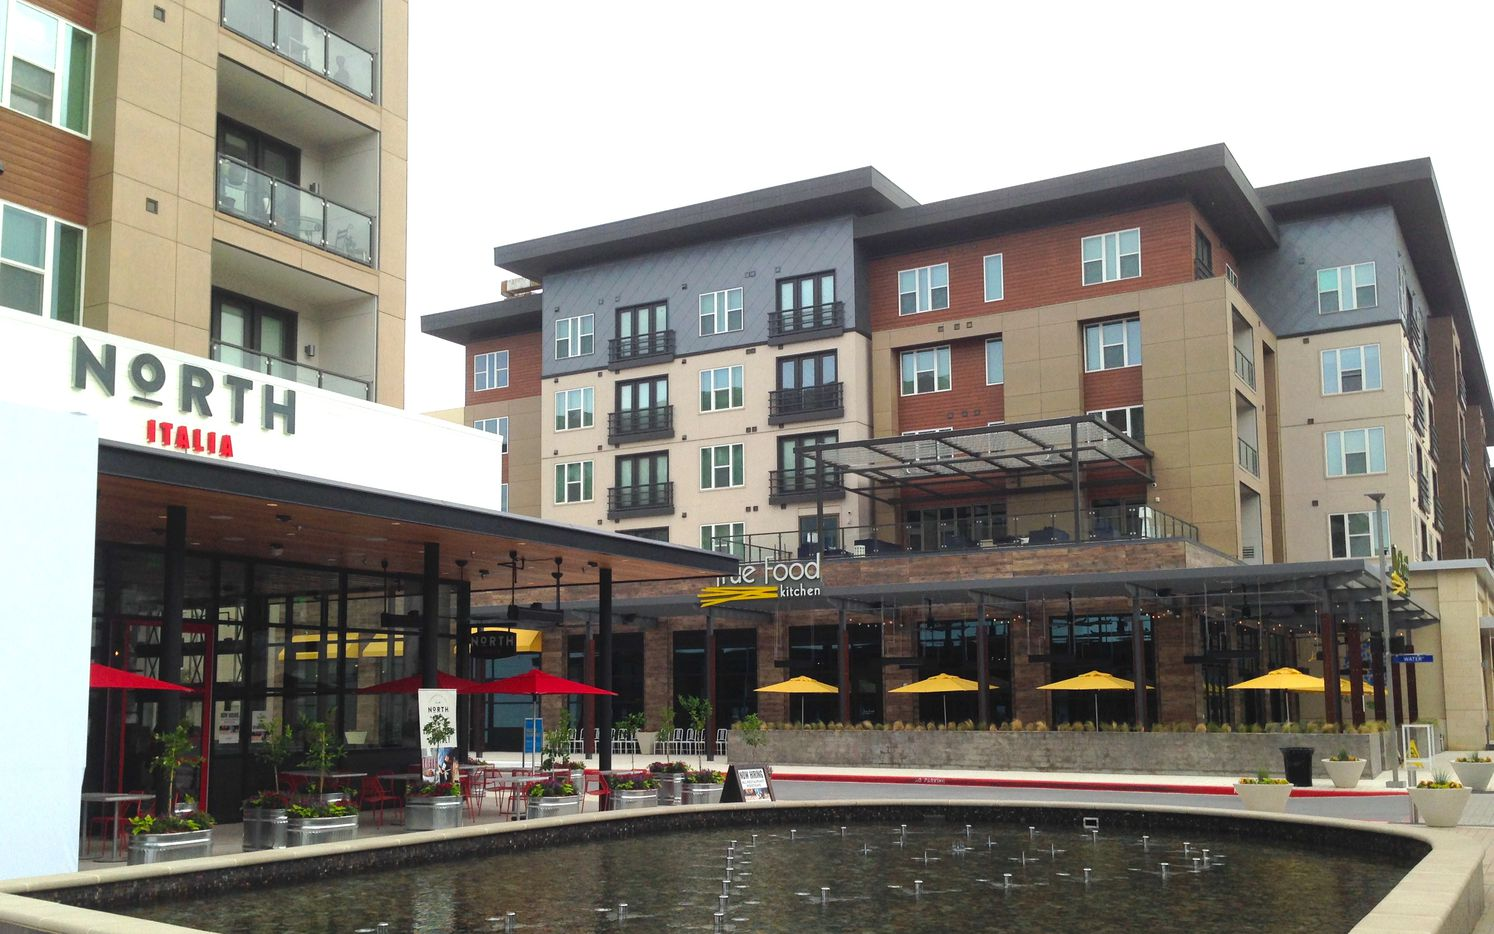 Legacy West Urban Village includes more than 300,000 square feet of shops and restaurants and hundreds of new apartments.